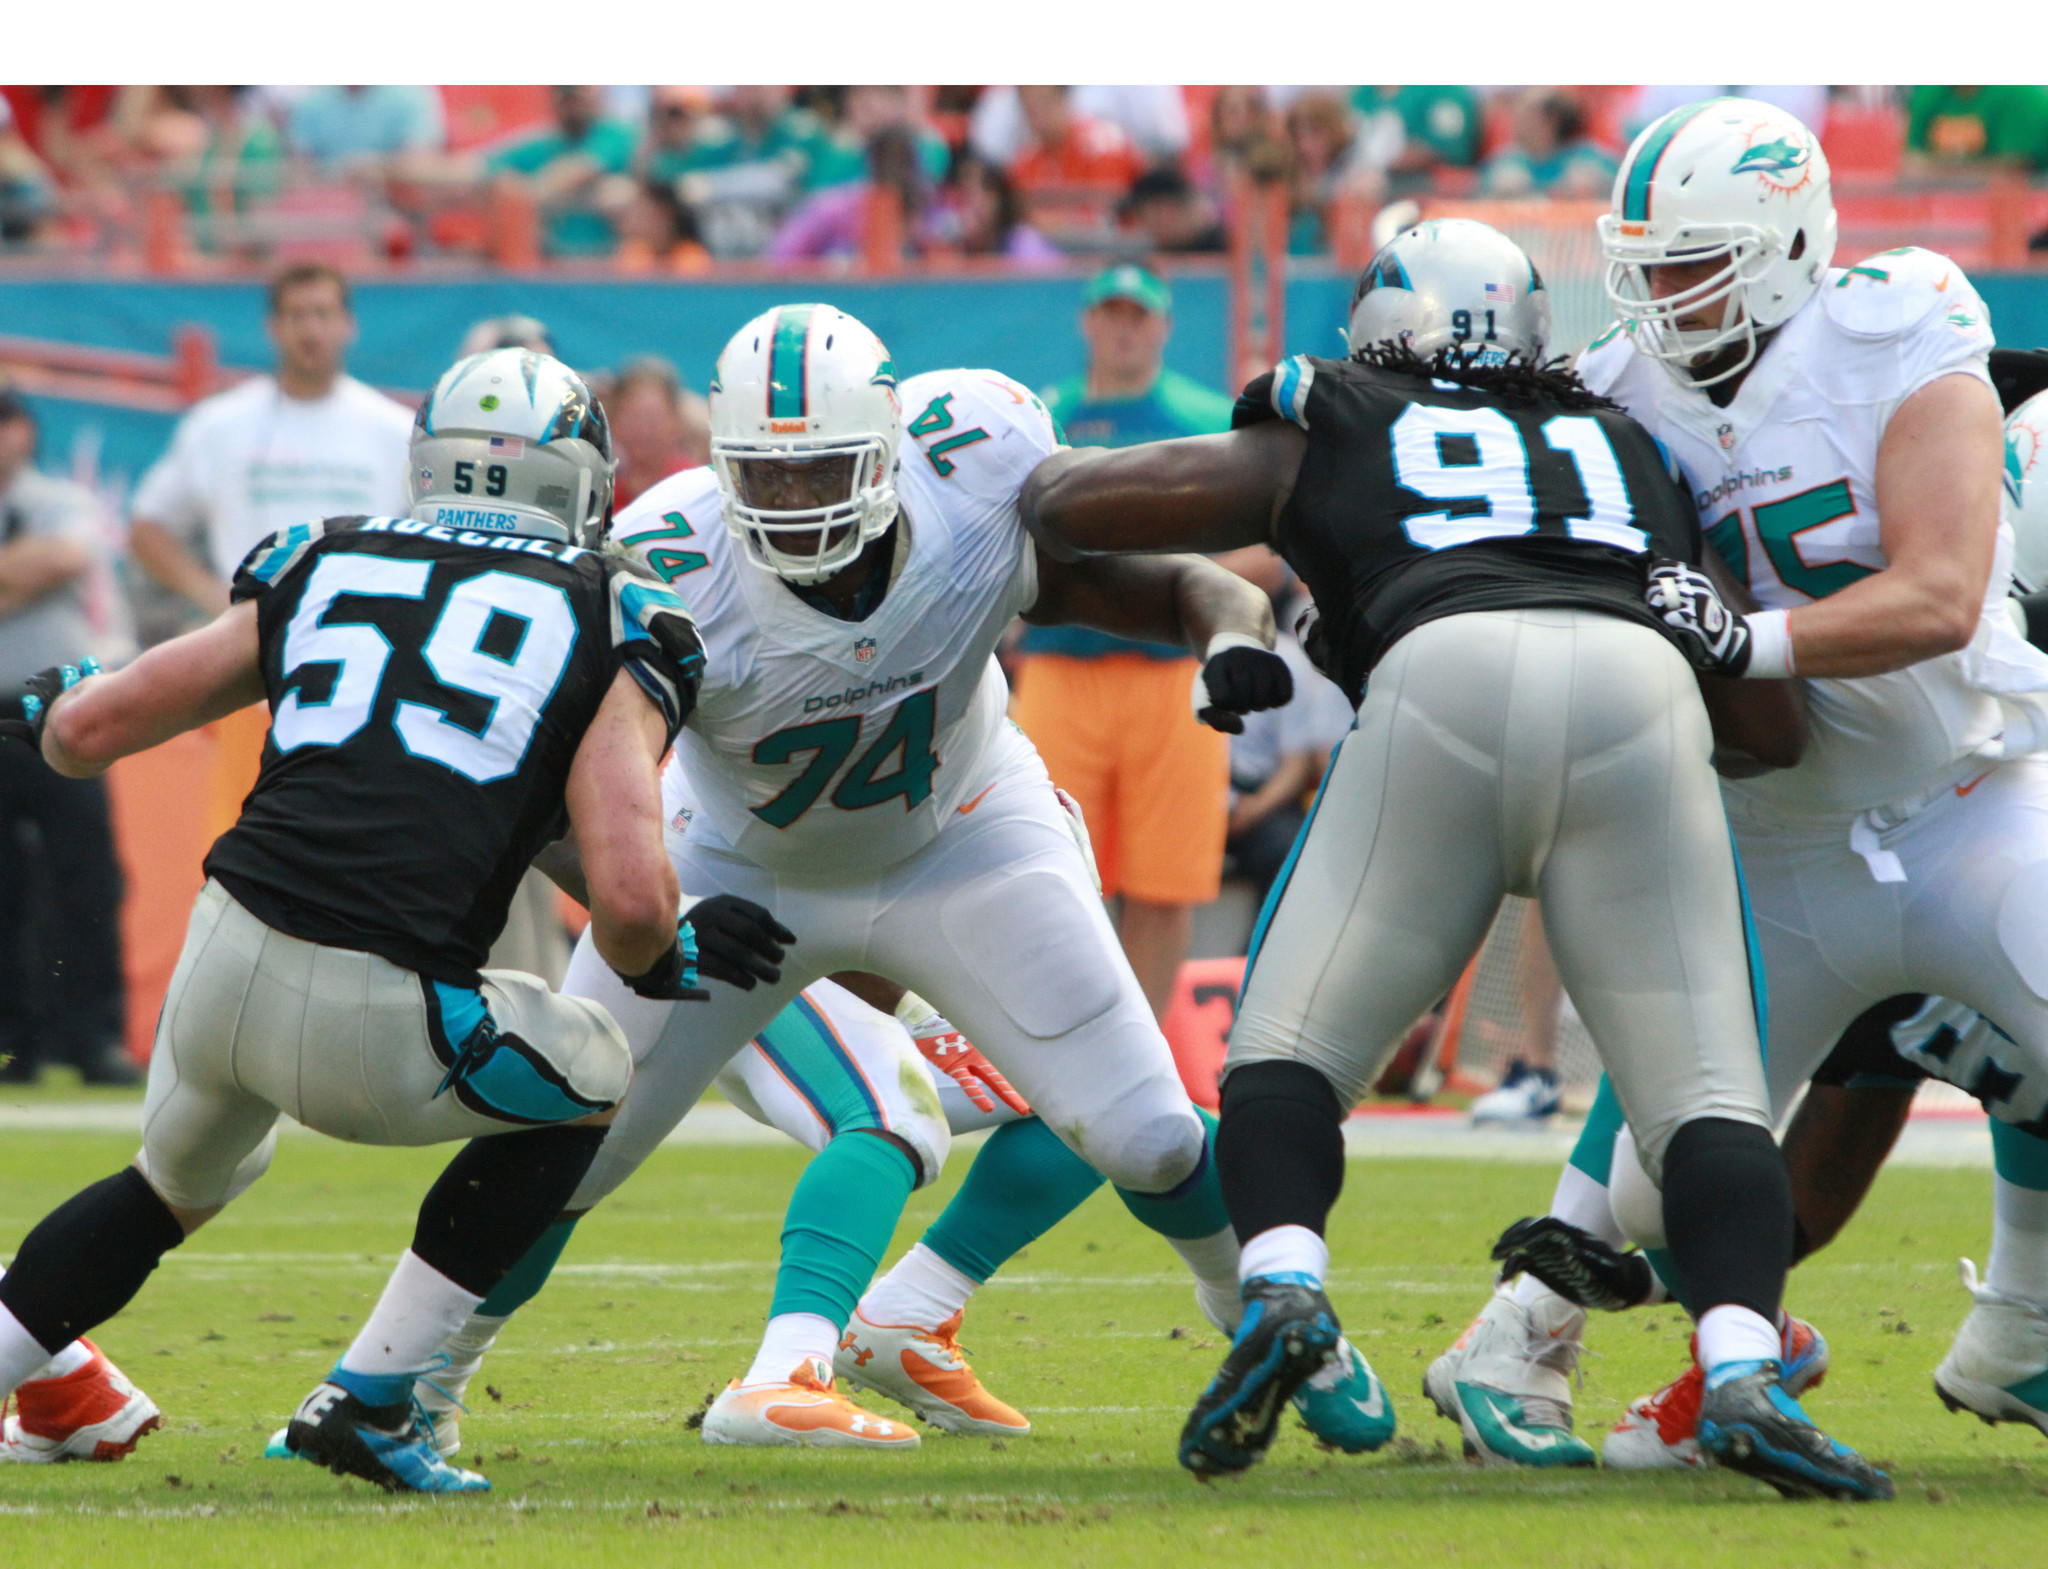 John Jerry uses his massive frame to block Luke Kuechly and Colin Cole from the opposition.